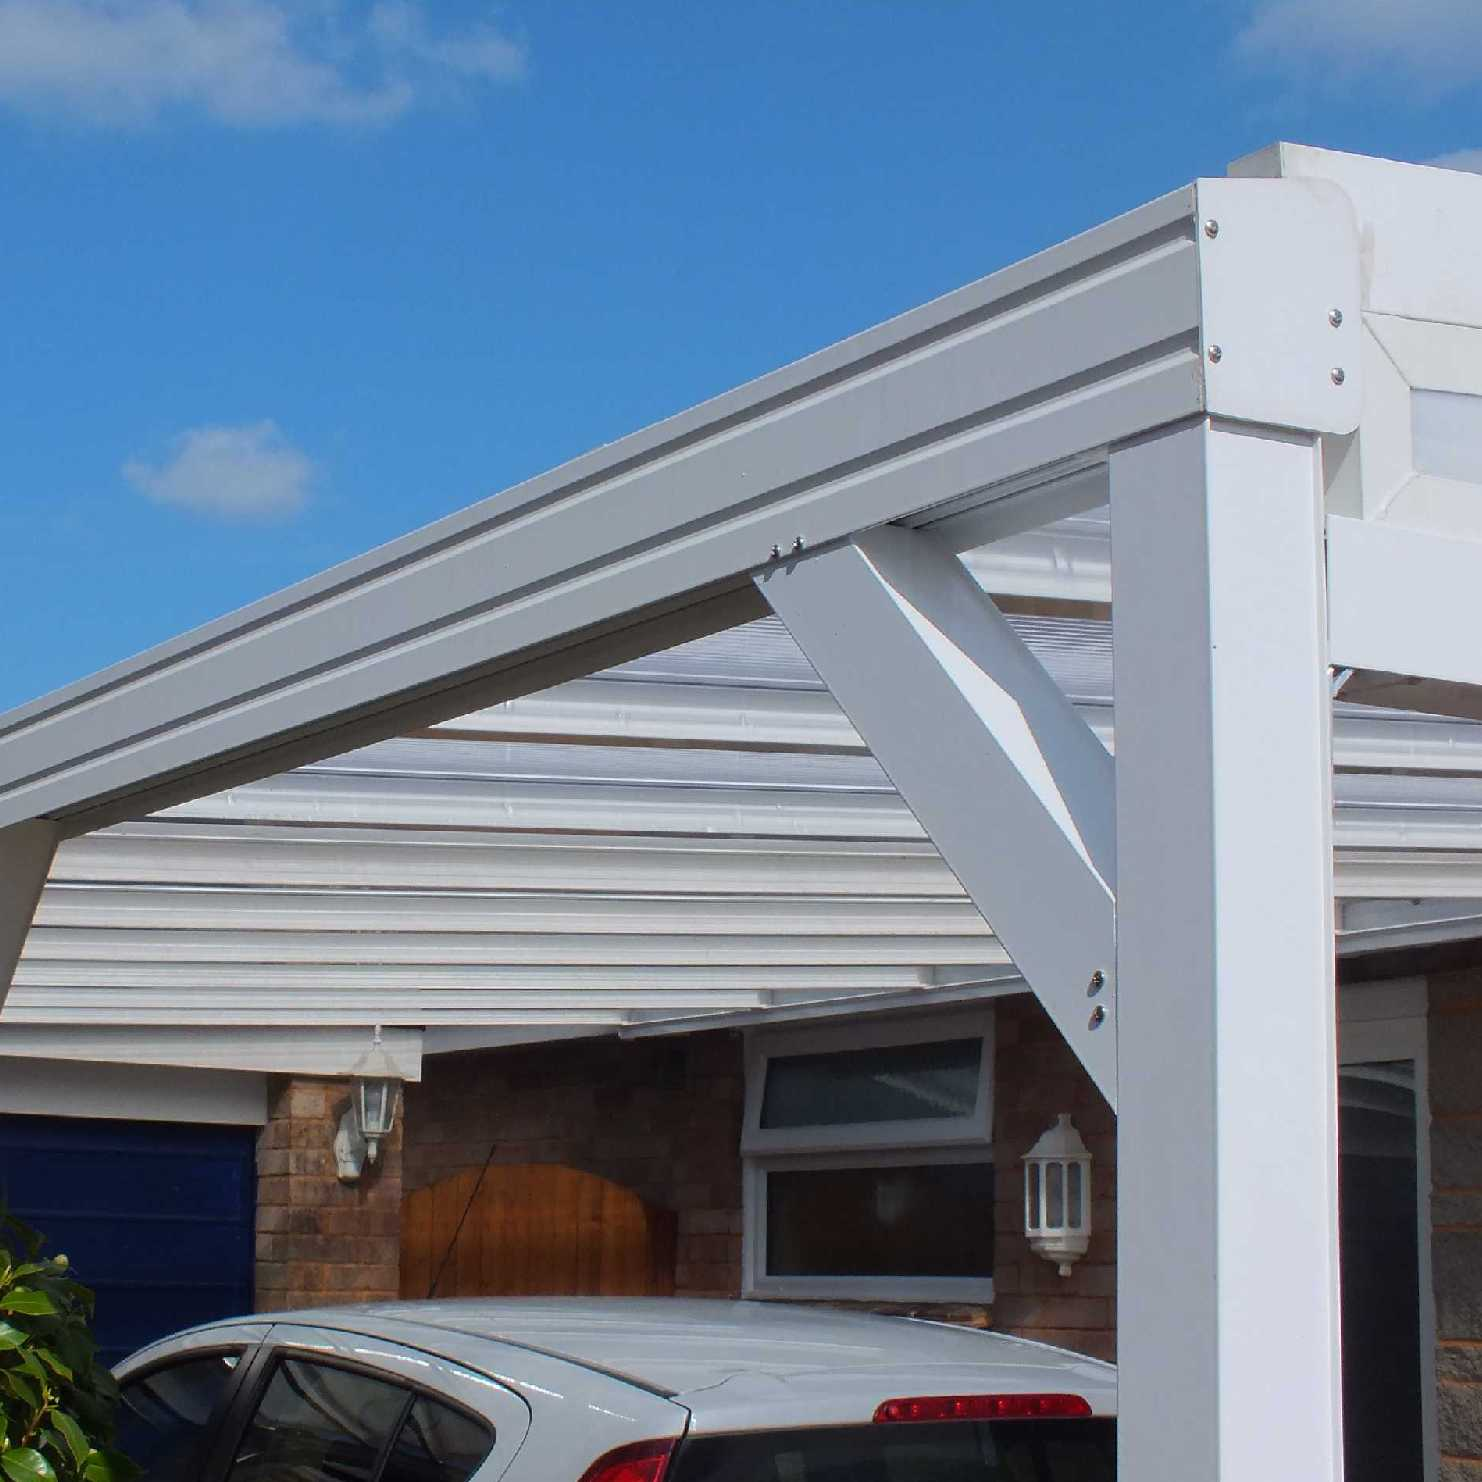 Buy Omega Smart White Lean-To Canopy with 16mm Polycarbonate Glazing - 6.3m (W) x 1.5m (P), (4) Supporting Posts online today